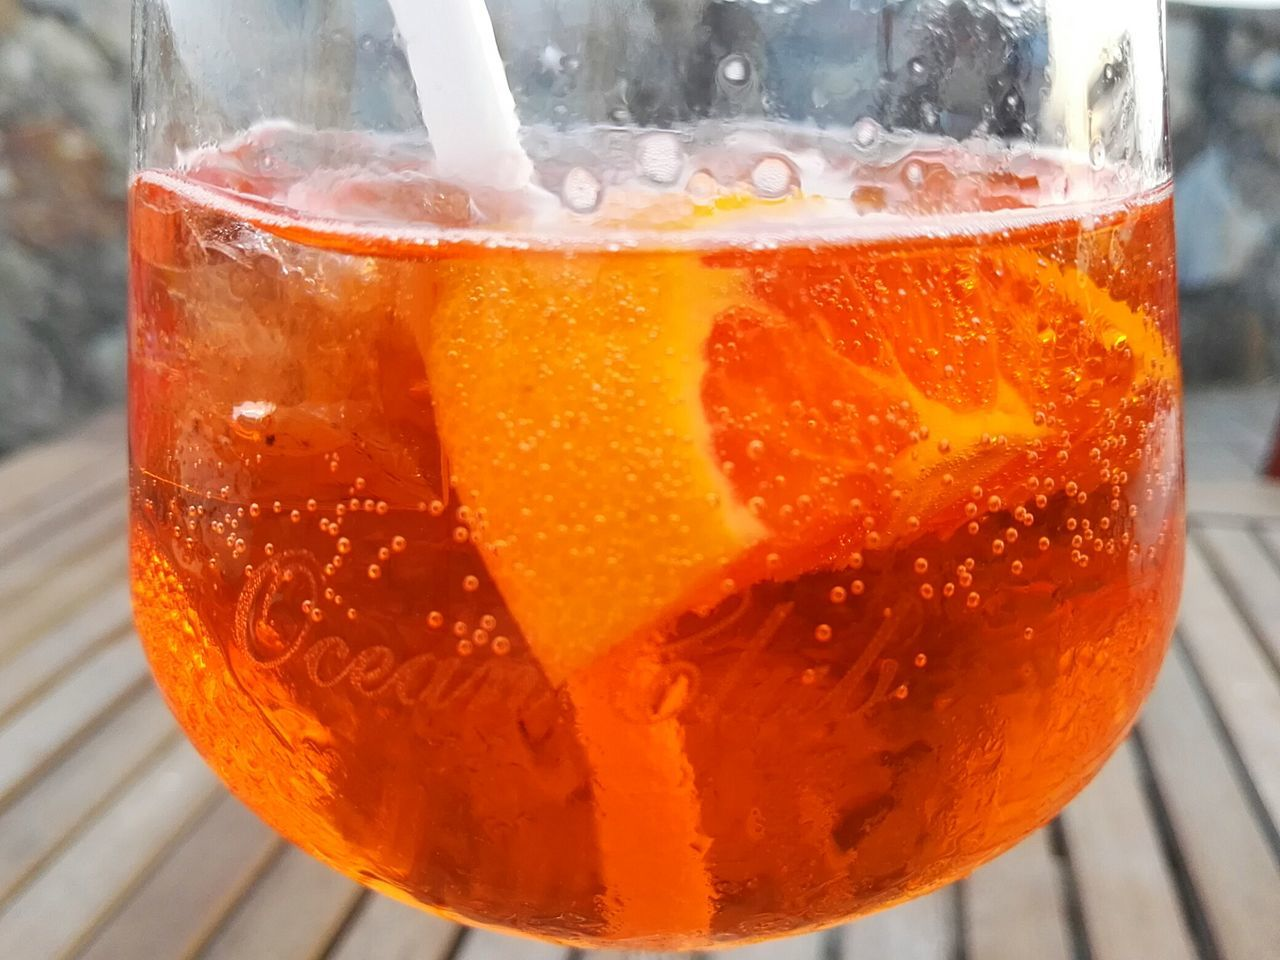 Spritz Drink Aperol Spritz Aperol Aperitivo  Orange Color Orange Arancia Drink Time Happy Hour Cocktail Bollicine Hello World EyeEm Best Edits EyeEm Gallery EyeEm Best Shots Aperitivo Time Drinking Glass Calice Relaxing Relax Cheese! Alcohol Enjoying Life Drinking